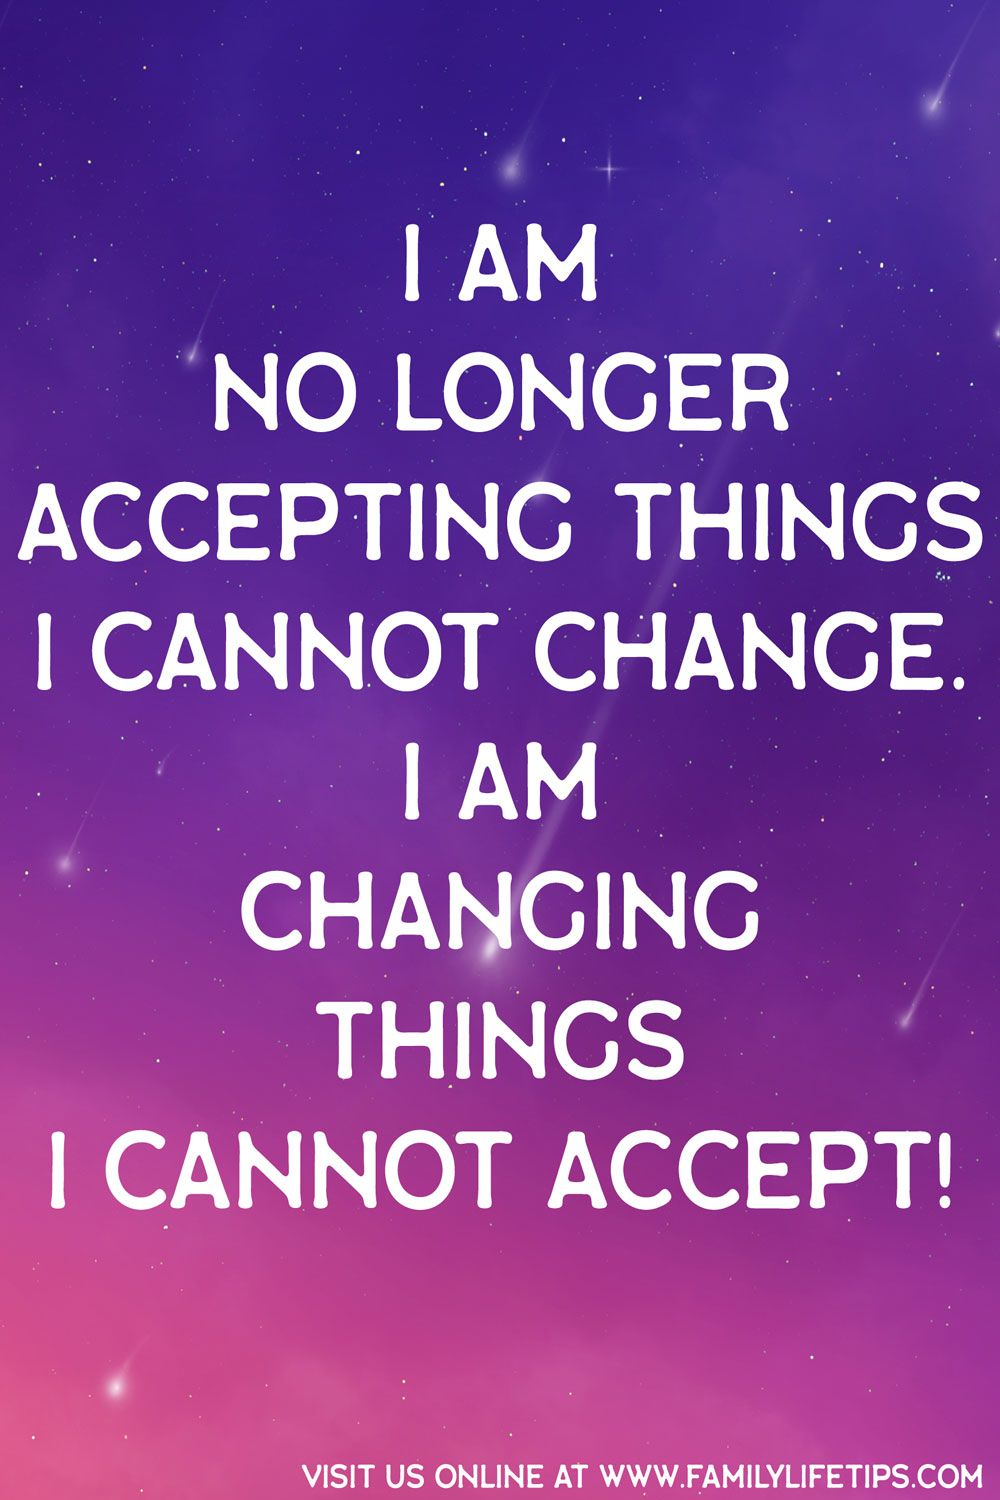 Inspirational Memes About Change : inspirational, memes, about, change, Inspirational, About, Change, Memes,, Parenting, Advice